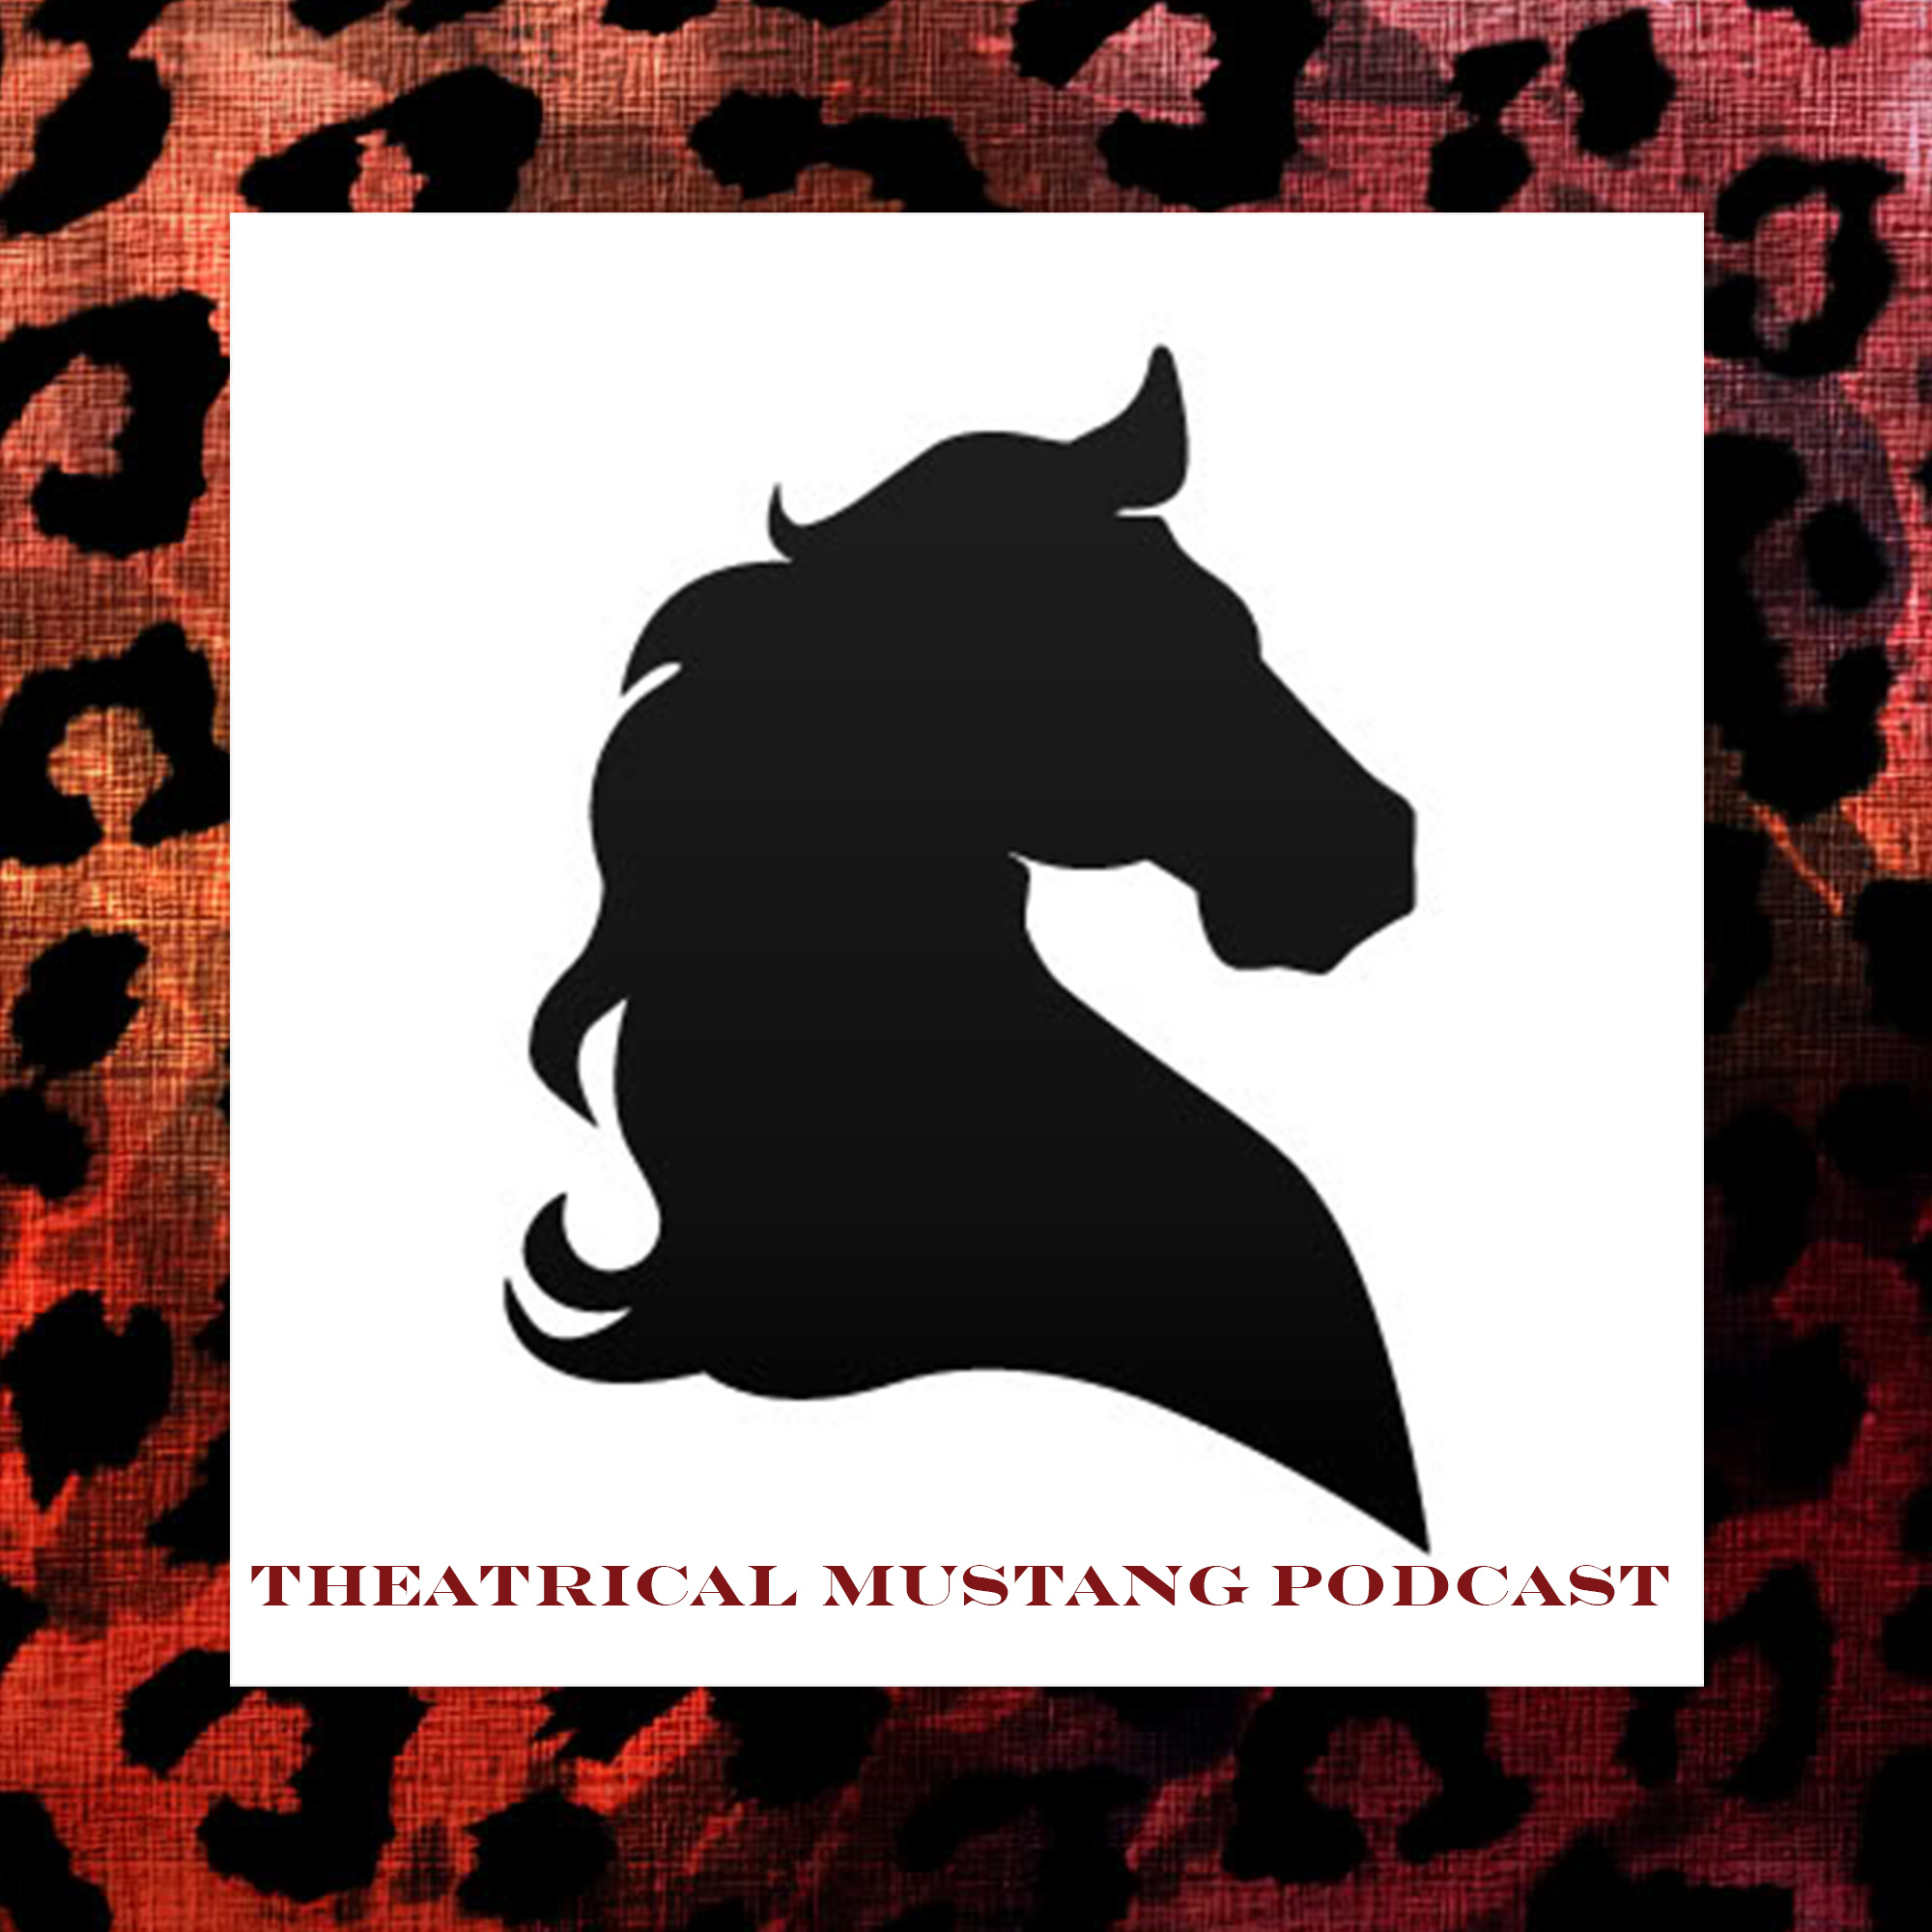 Theatrical Mustang Podcast